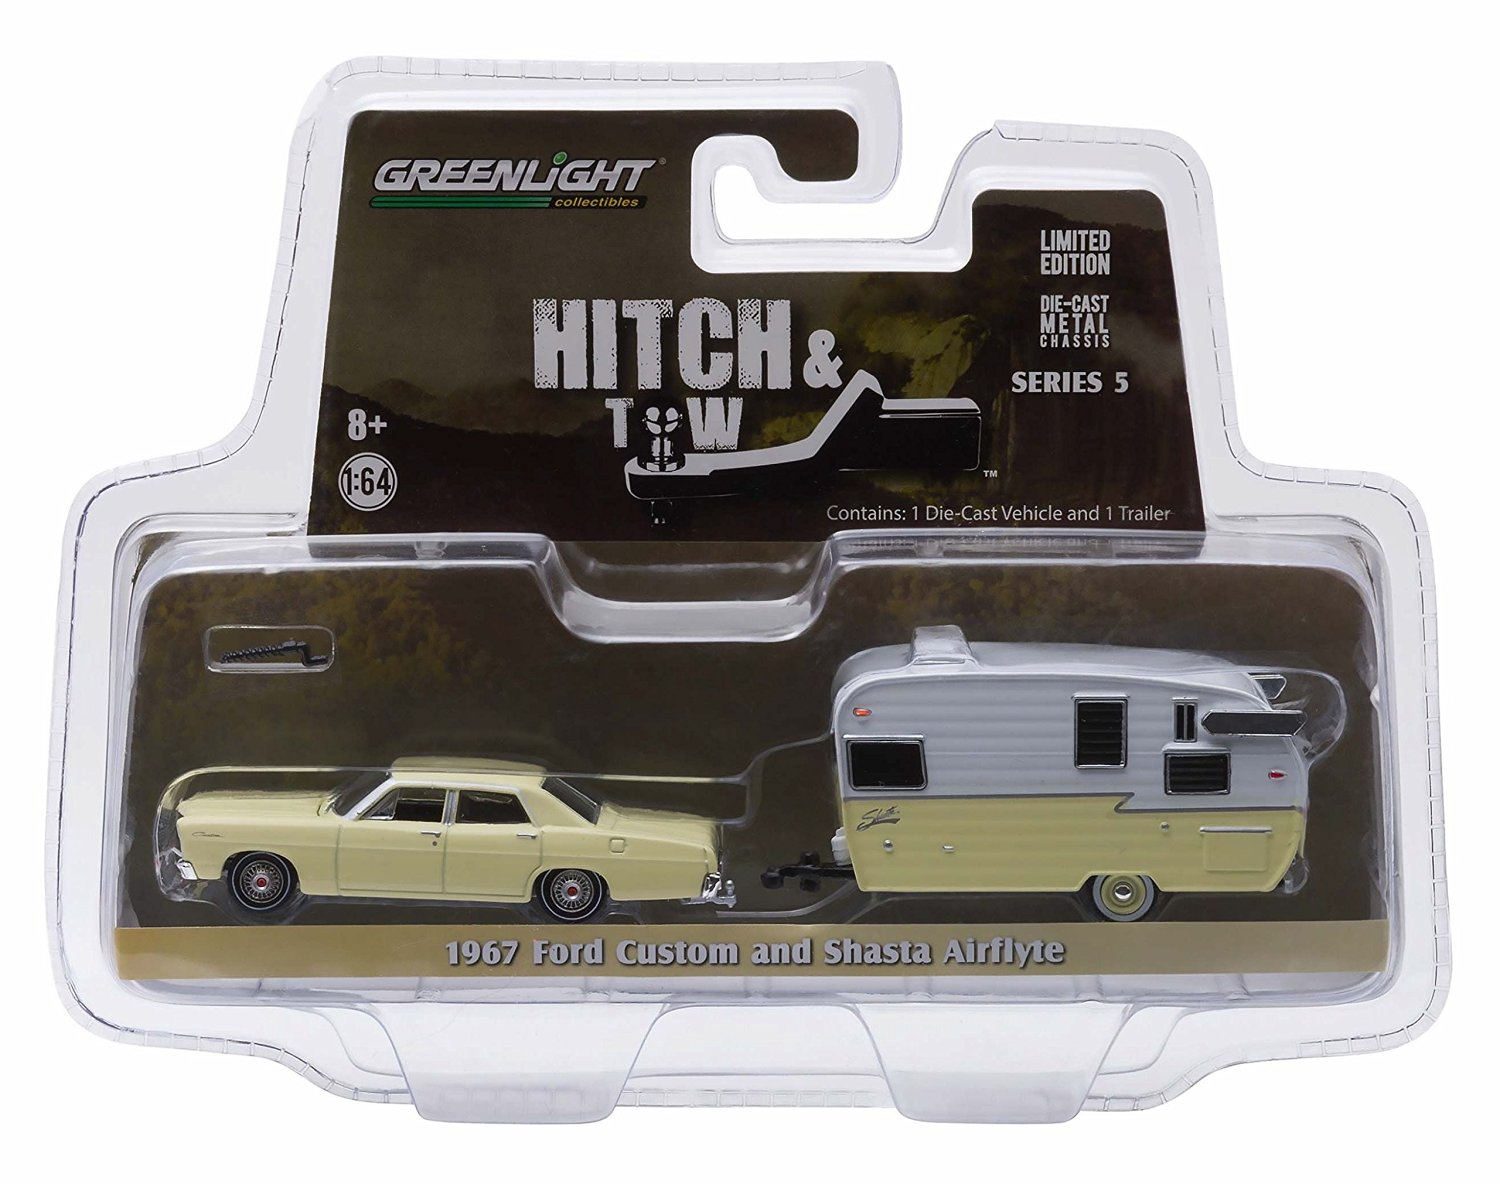 1967 FORD CUSTOM & SHASTA 15' AIRFLYTE * Hitch & Tow Series 5 * 2015 Greenlight Collectibles Truck & Trailer Limited Edition 1:64 Scale Die-Cast Vehicle Set